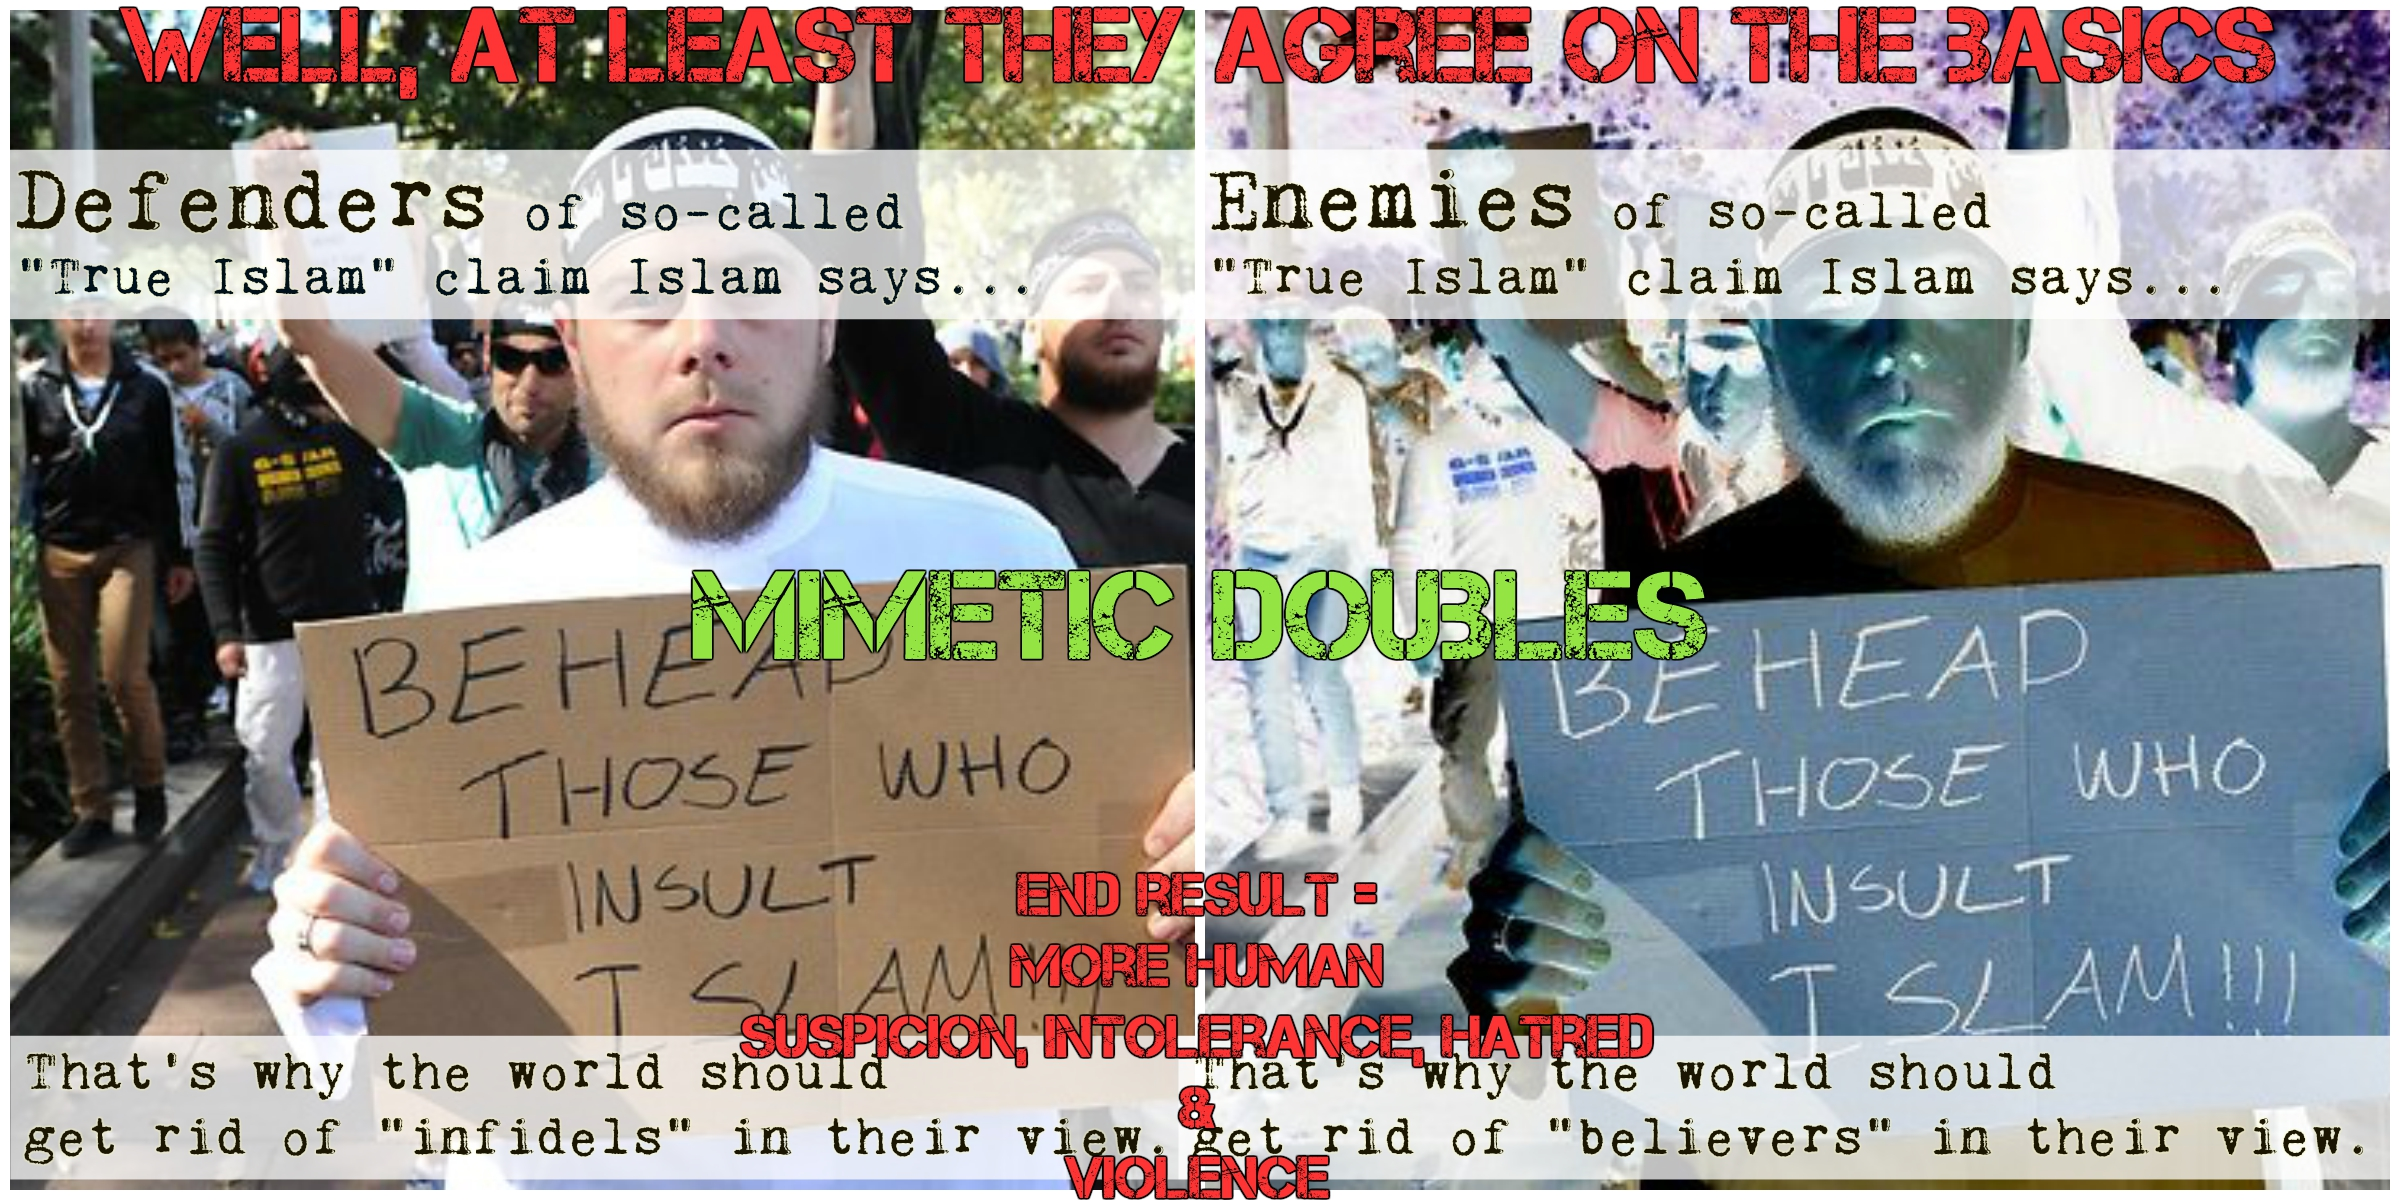 islam and violence the truth Islam got off to a weak start under muhammad until violence became the modus   like most urban legends, these falsehoods are based on only barely true,.